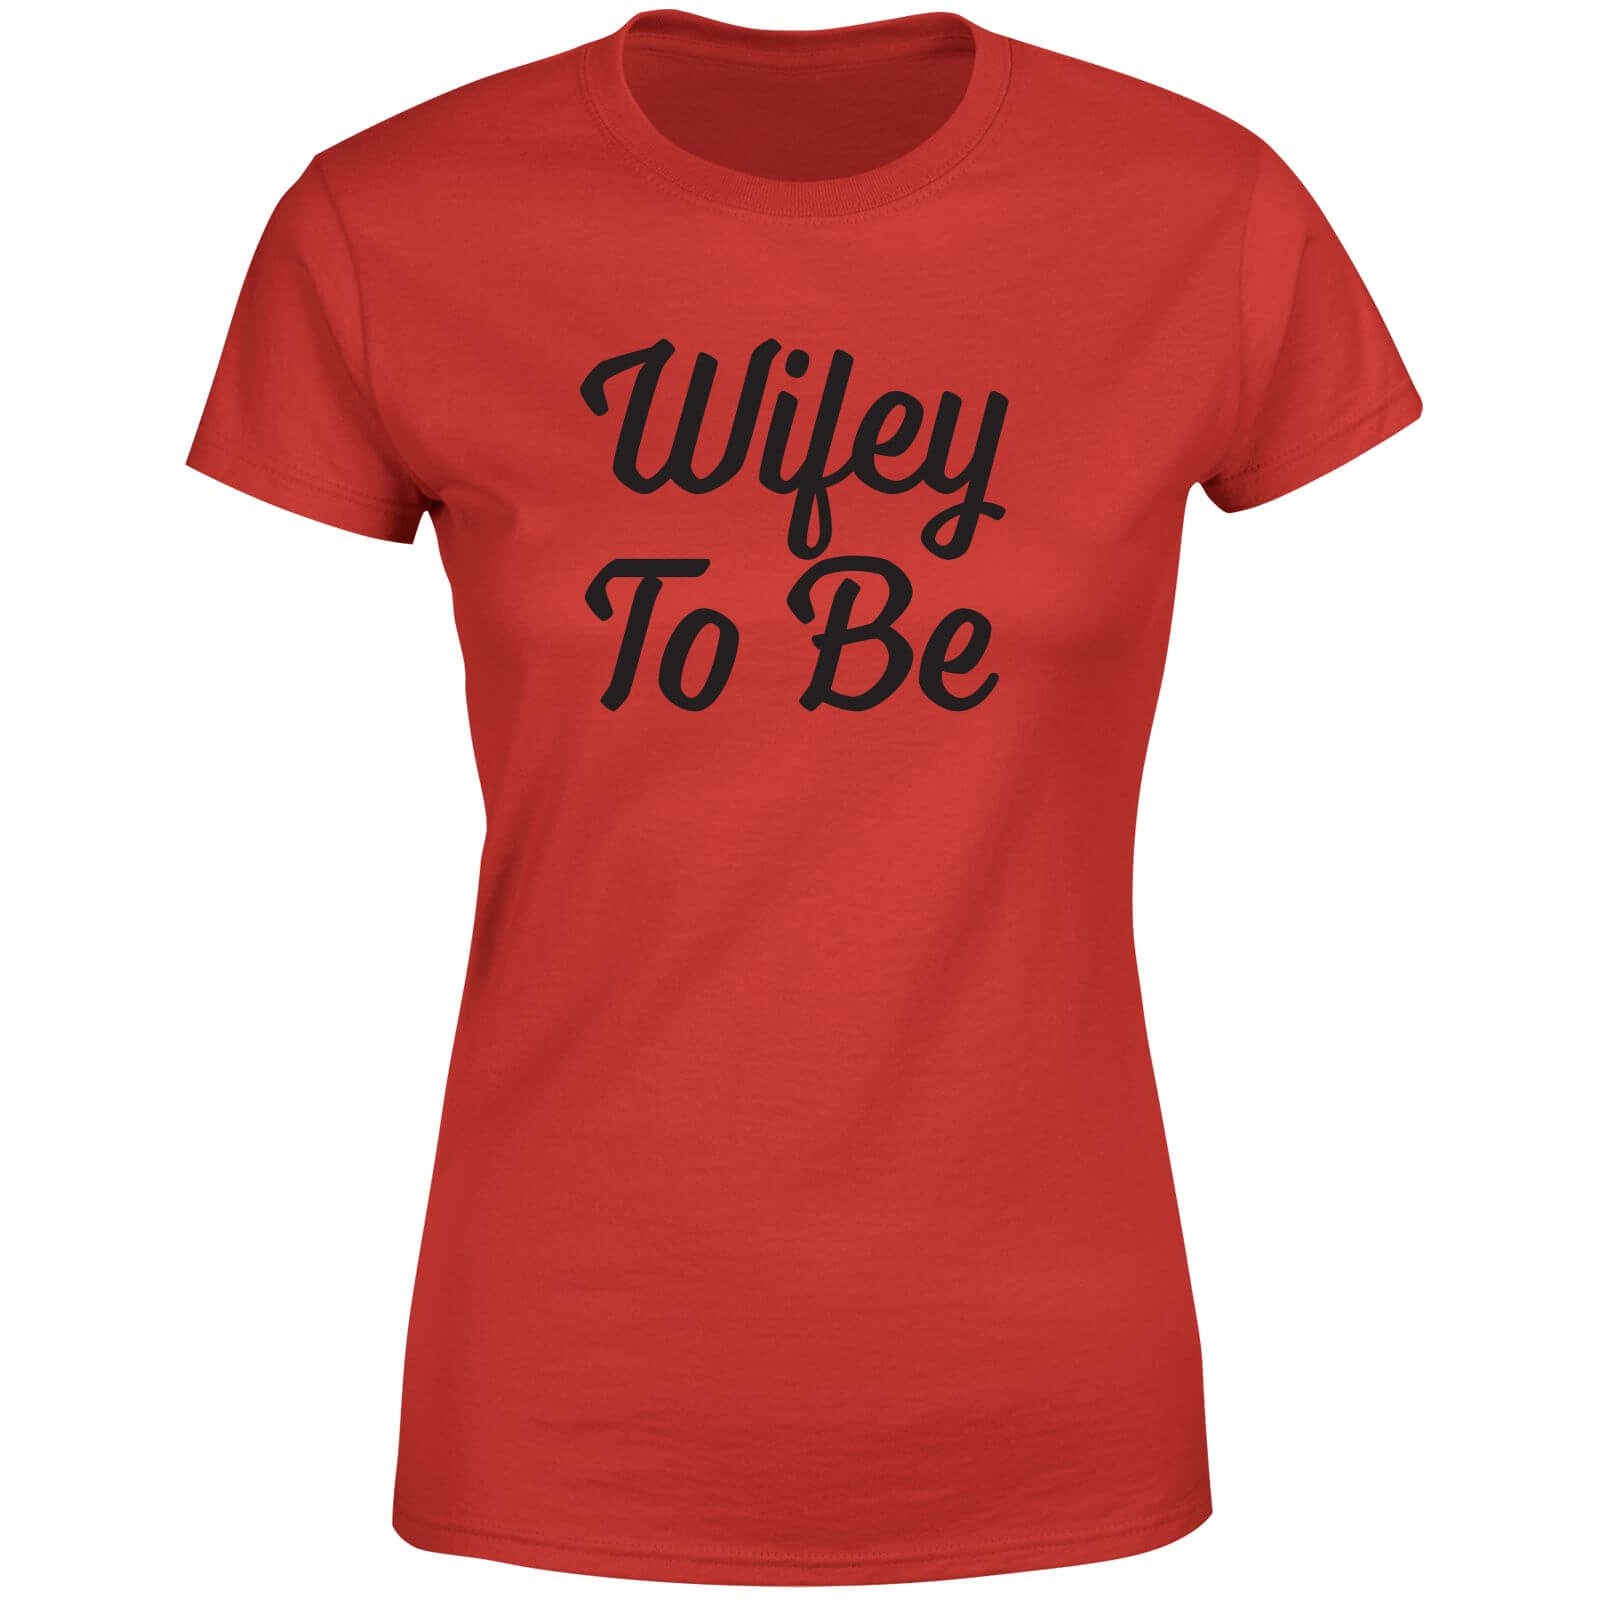 Wifey To Be Women